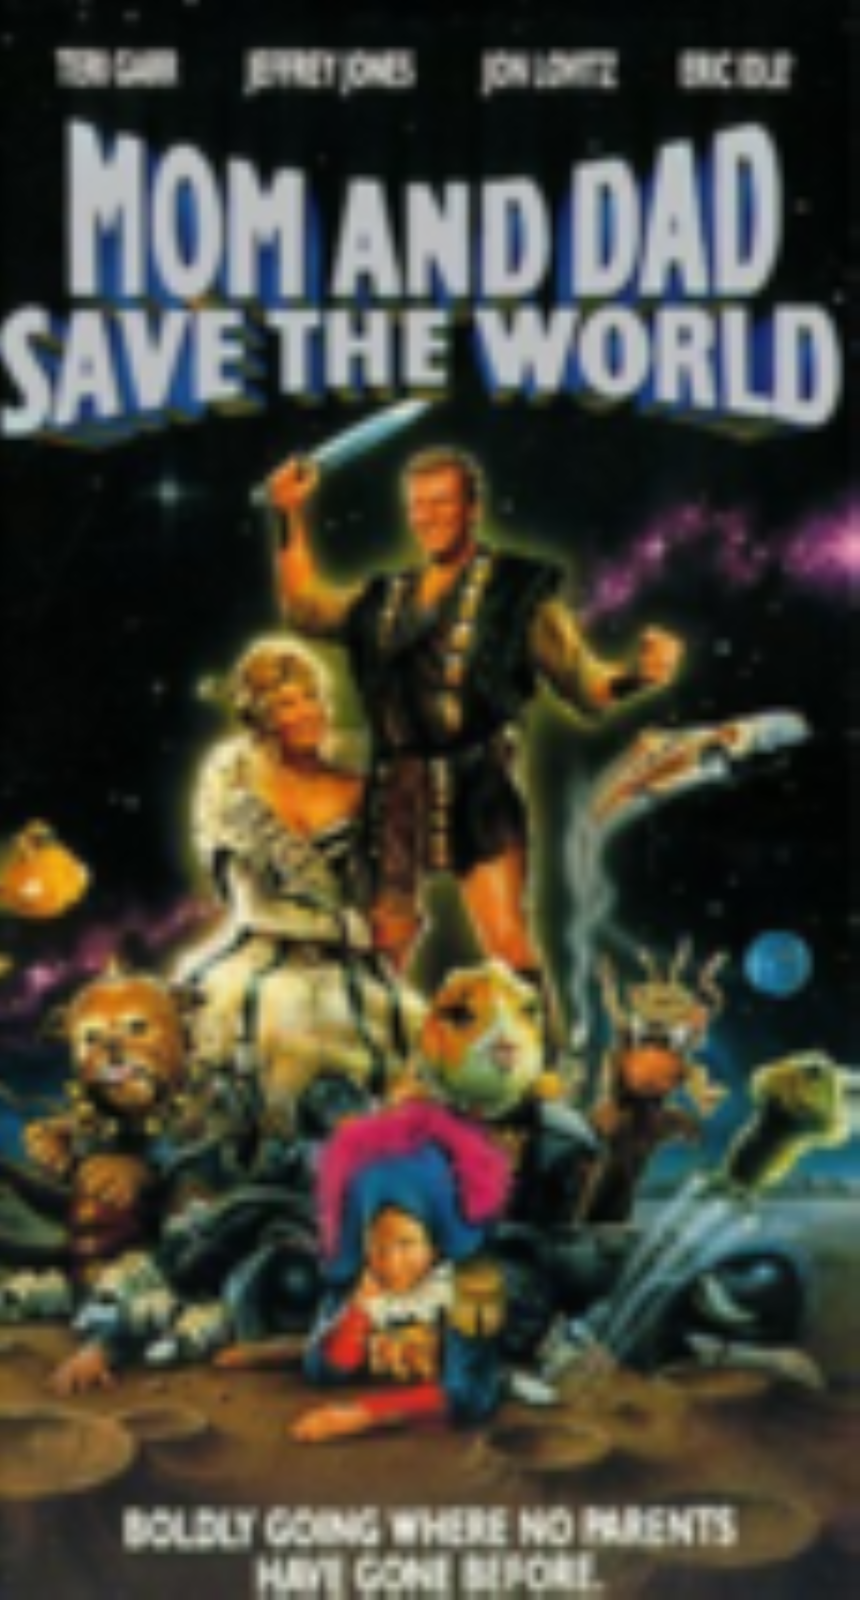 Mom & Dad Save the World Vhs